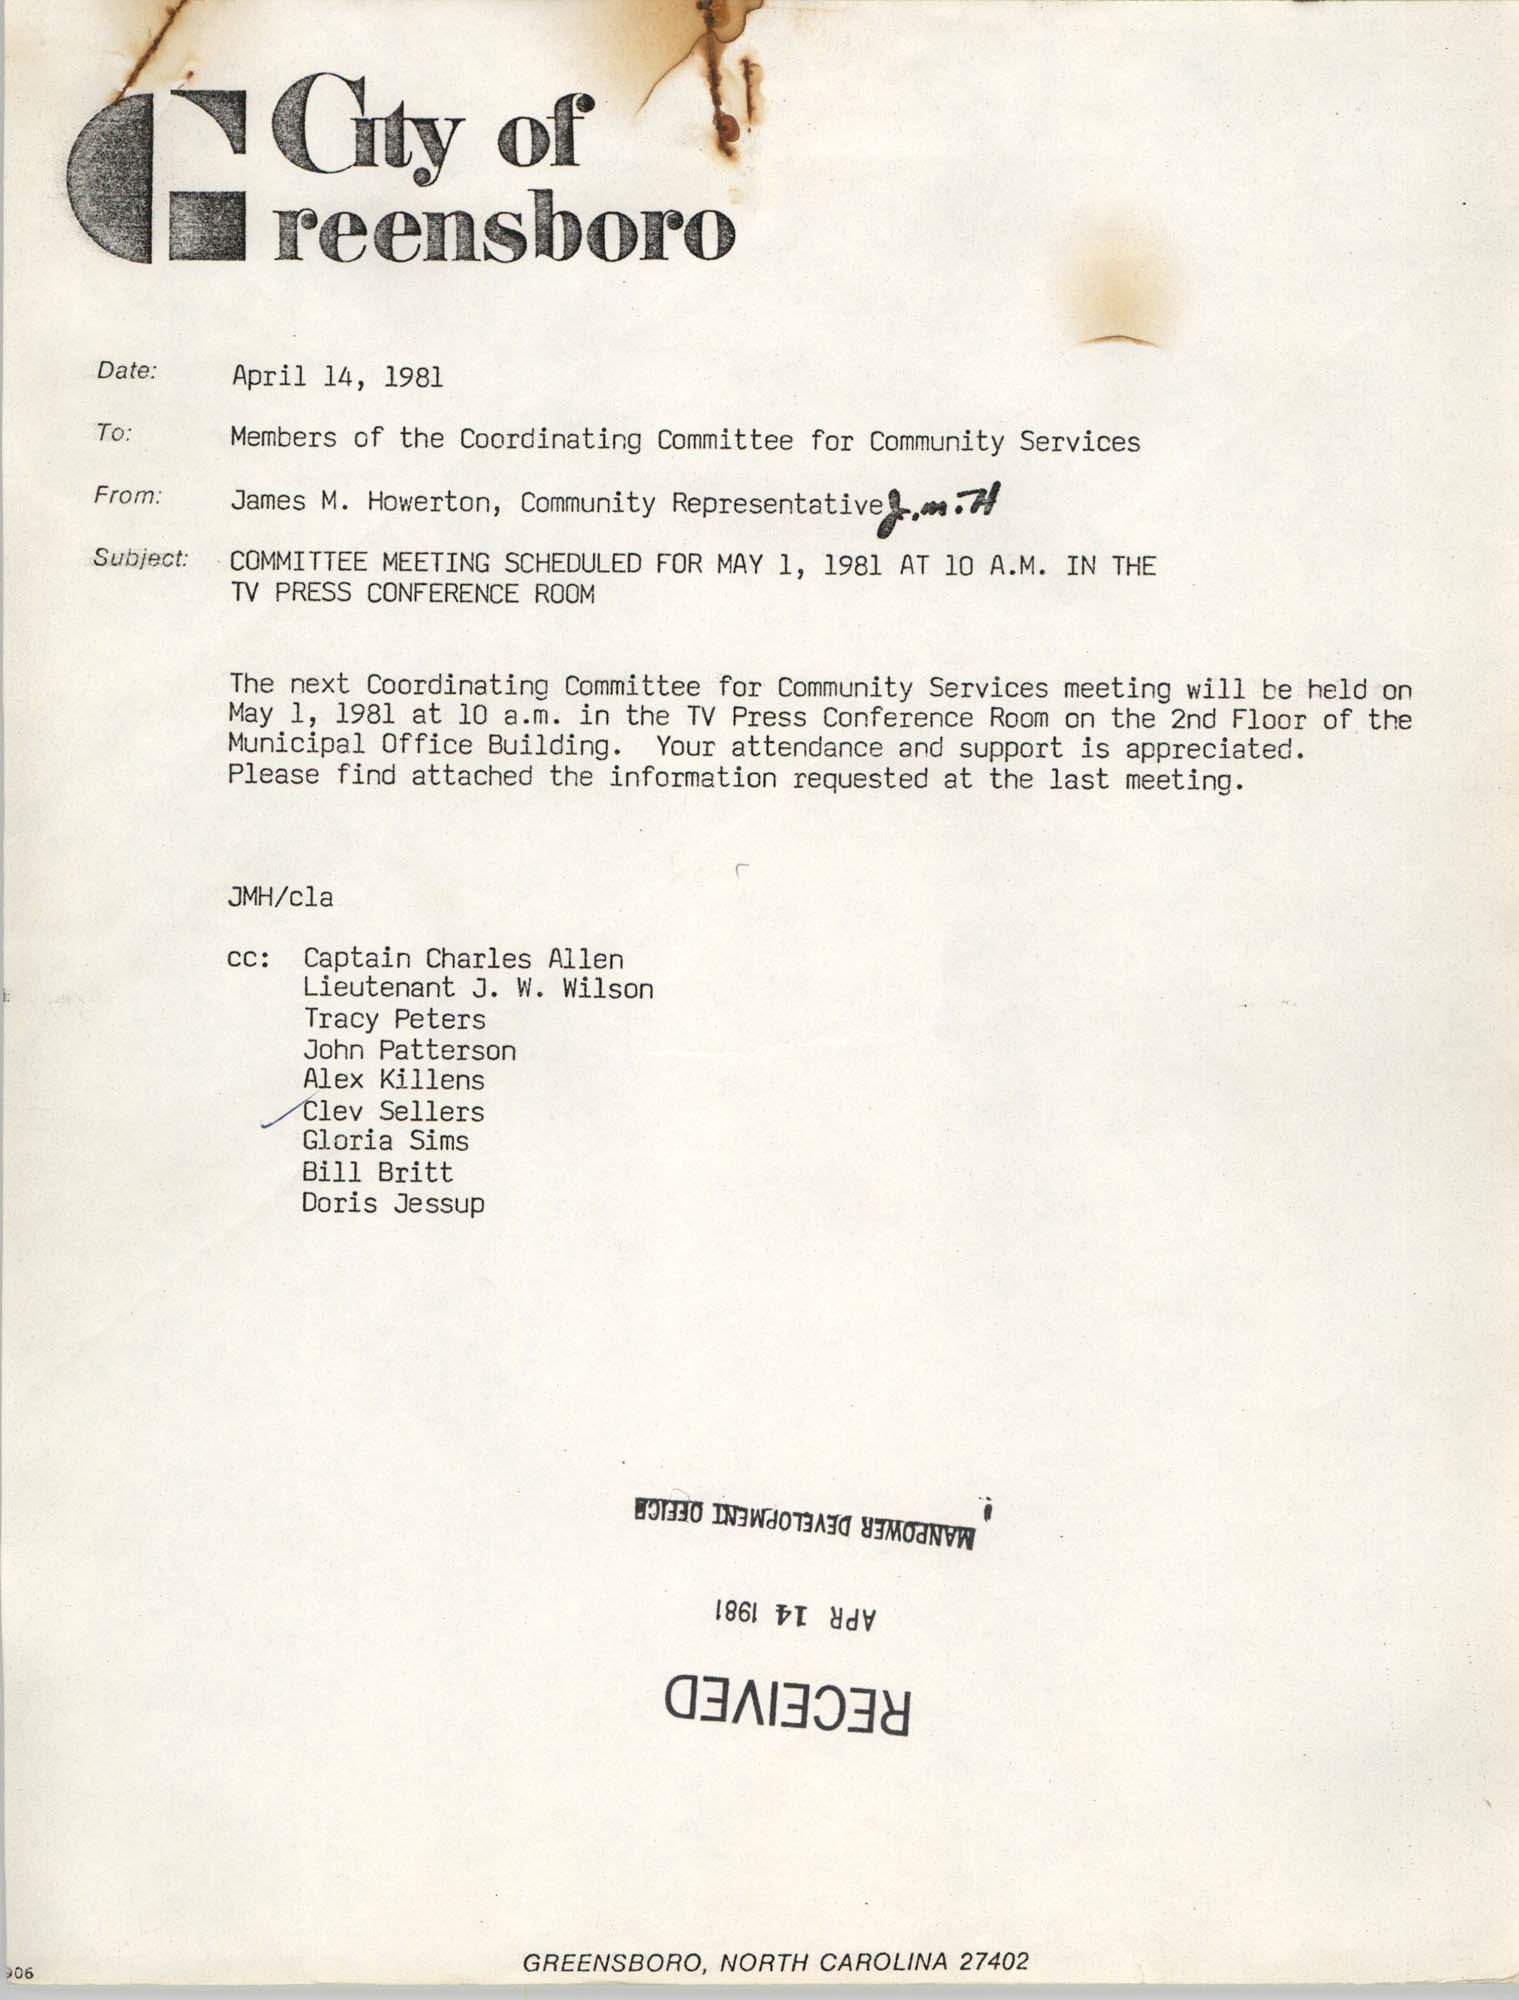 City of Greensboro Memorandum, April 14, 1981